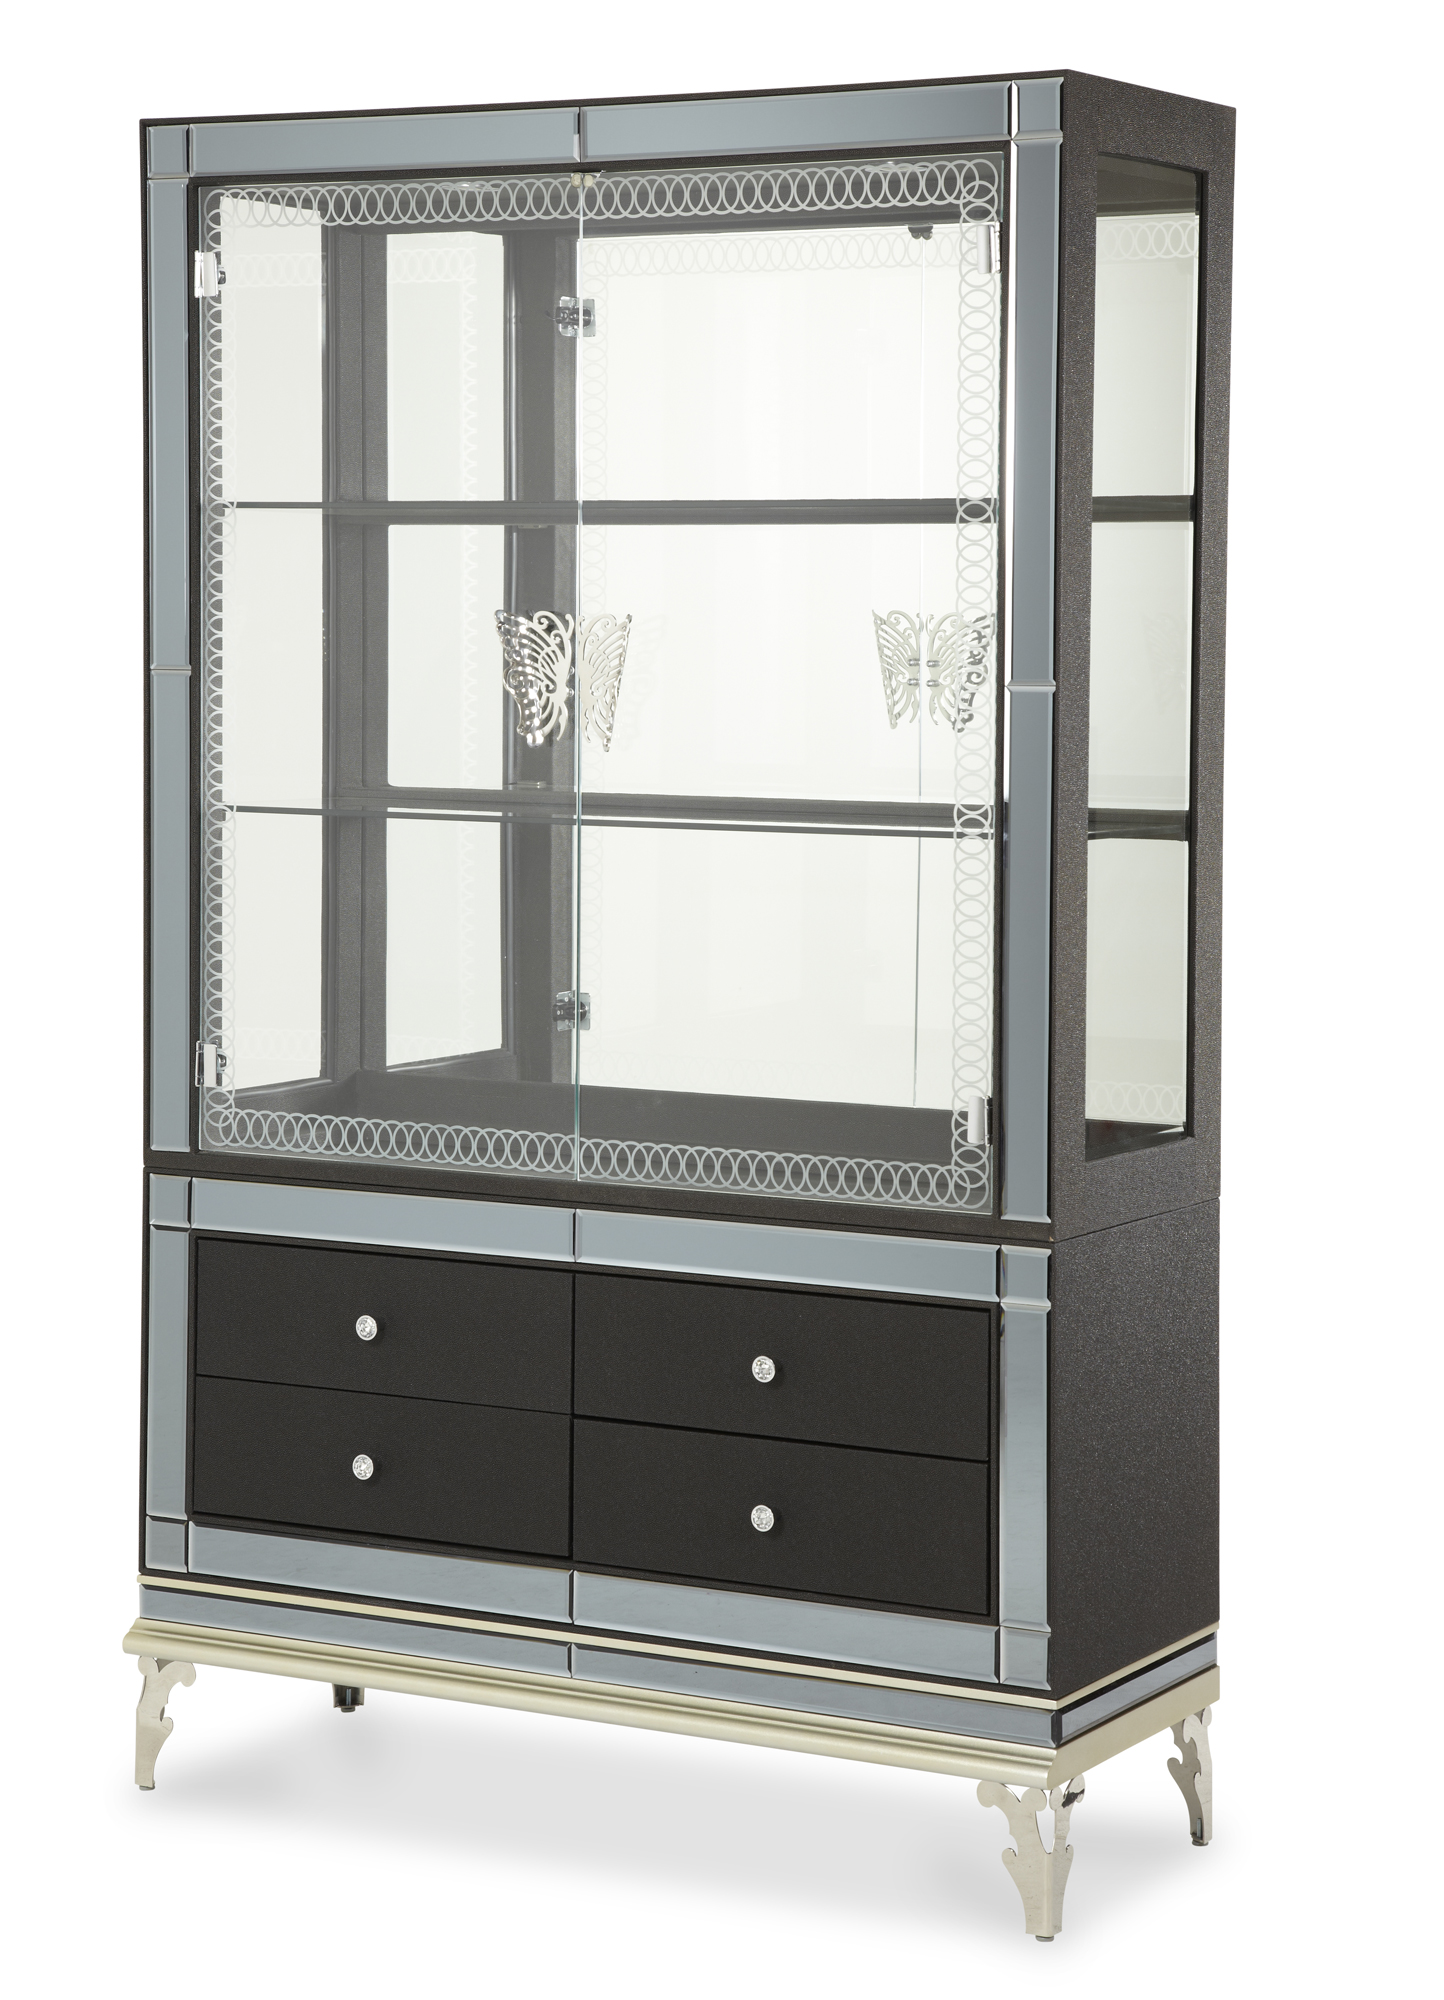 Hollywood Swank Curio Cabinet with Drawers in Caviar | AICO | Home ...